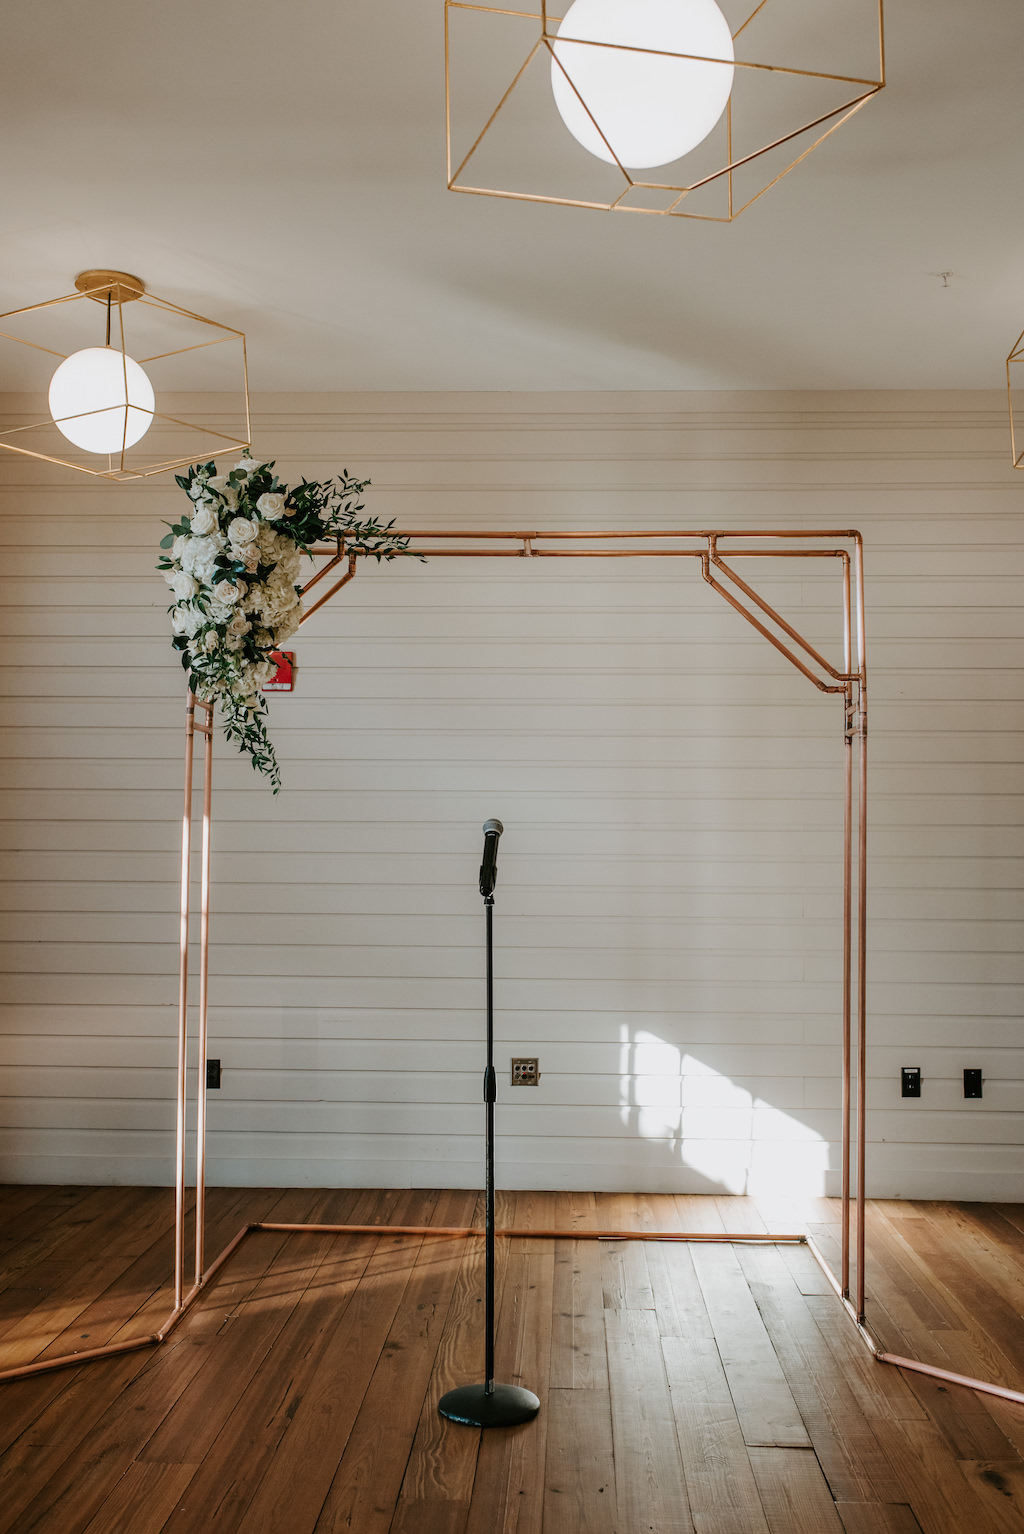 Modern, Romantic, Geometric Inspired Wedding Ceremony Decor, Gold Rectangle Ceremony Arch, White, Blush Pink Floral Arrangement with Greenery On Ceremony Arch   Tampa Bay Venue The Gathering at Armature Works